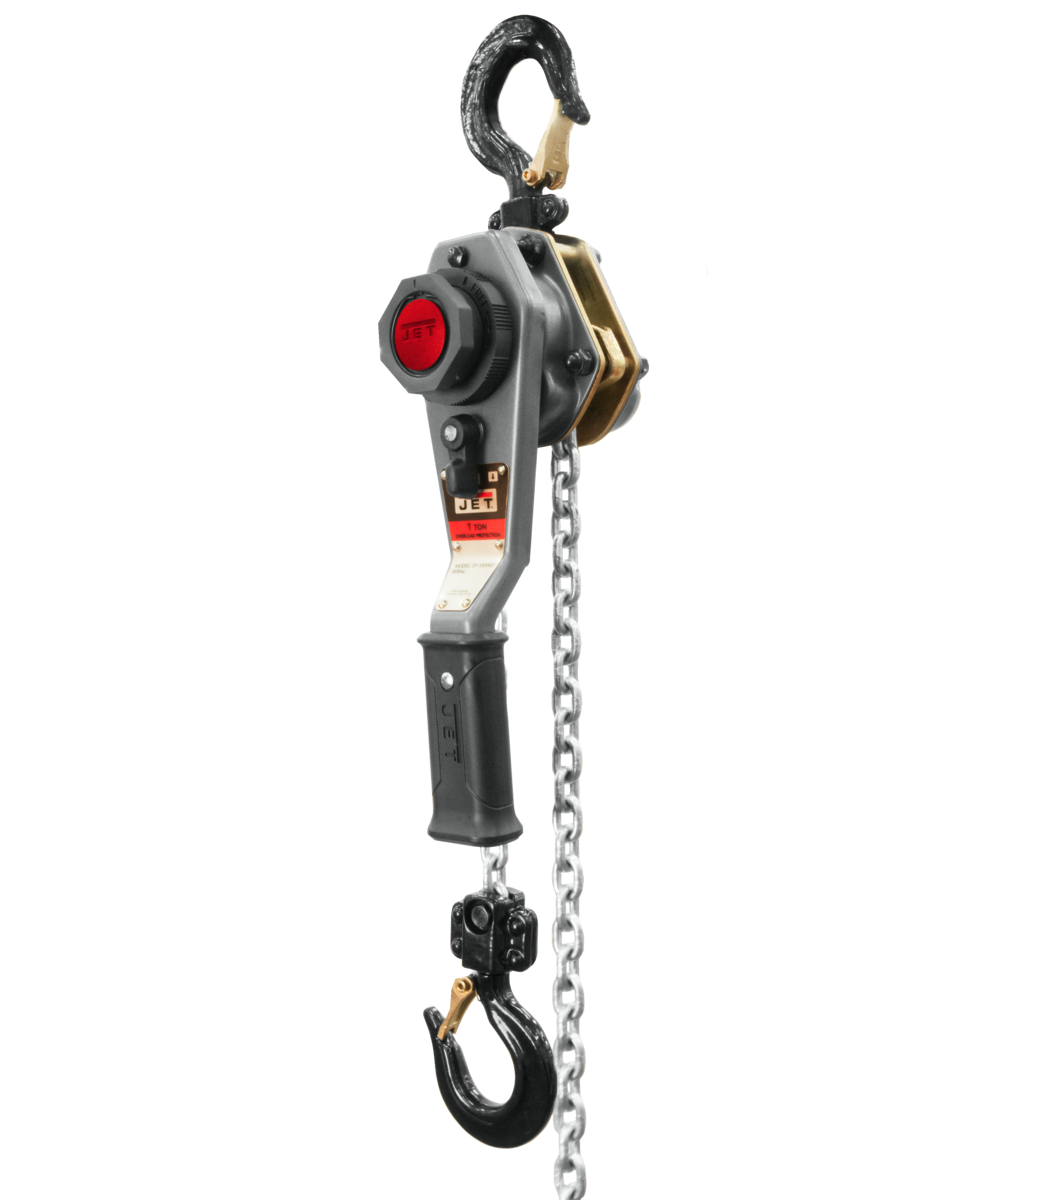 JLH Series 1 Ton Lever Hoist, 20' Lift with Overload Protection